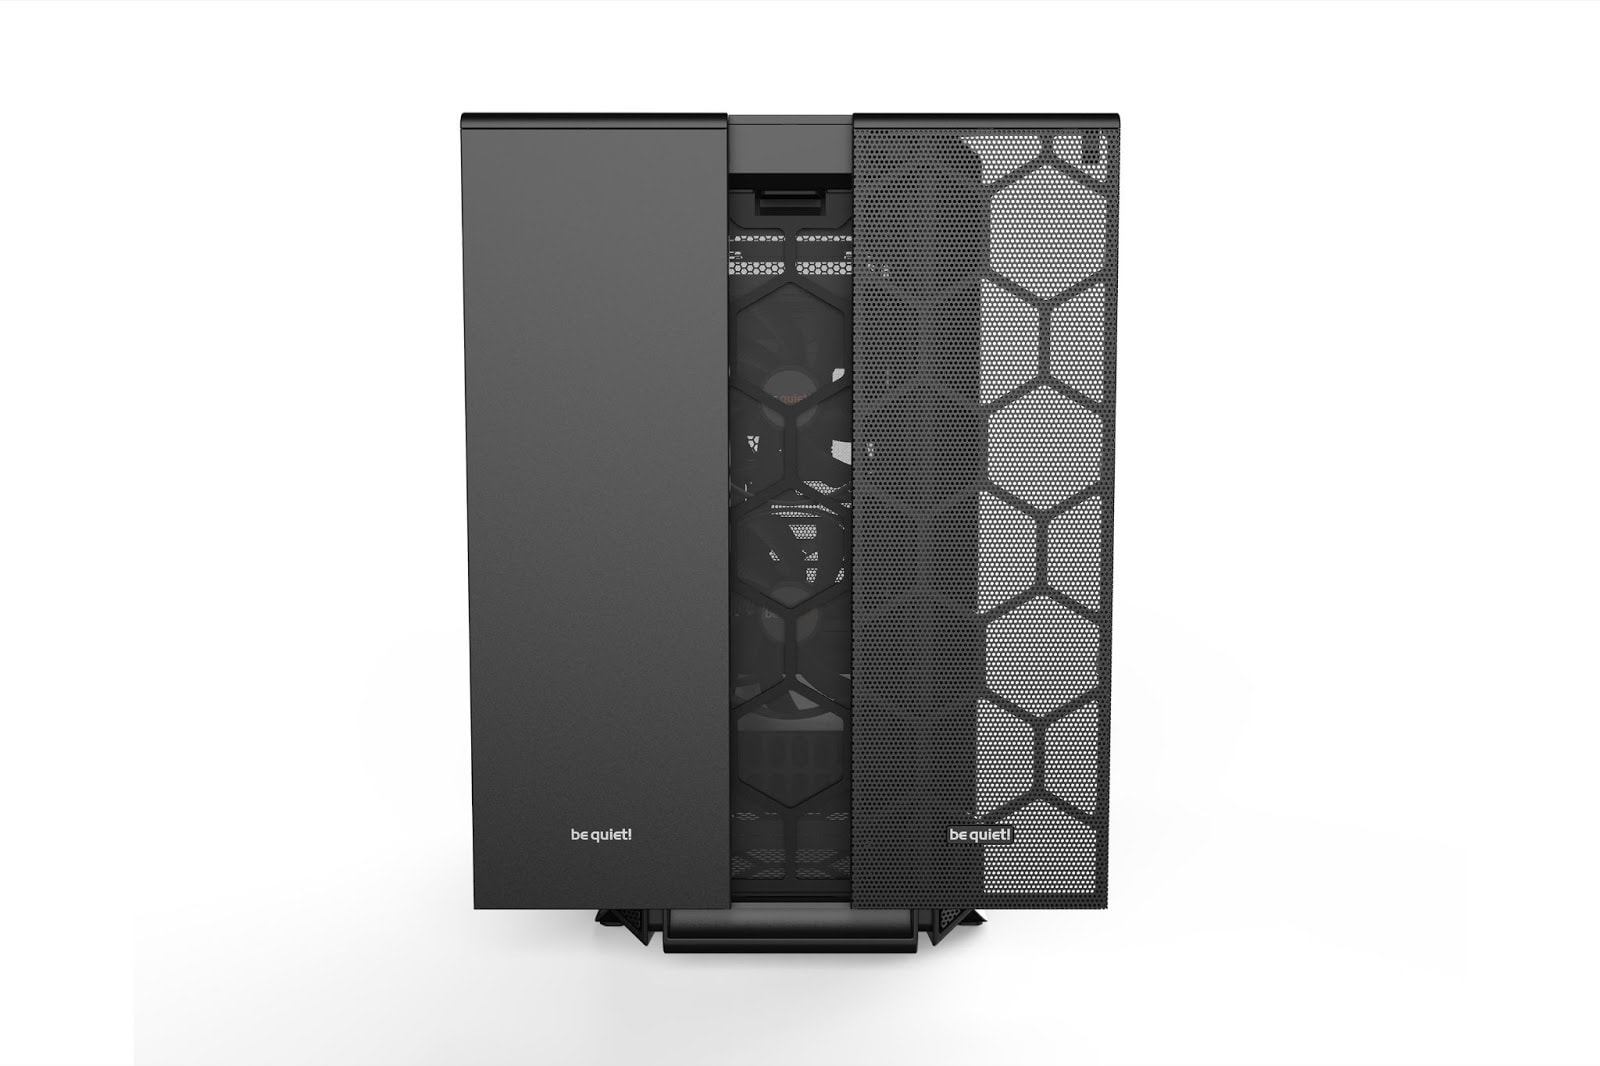 be quiet silent base front panel